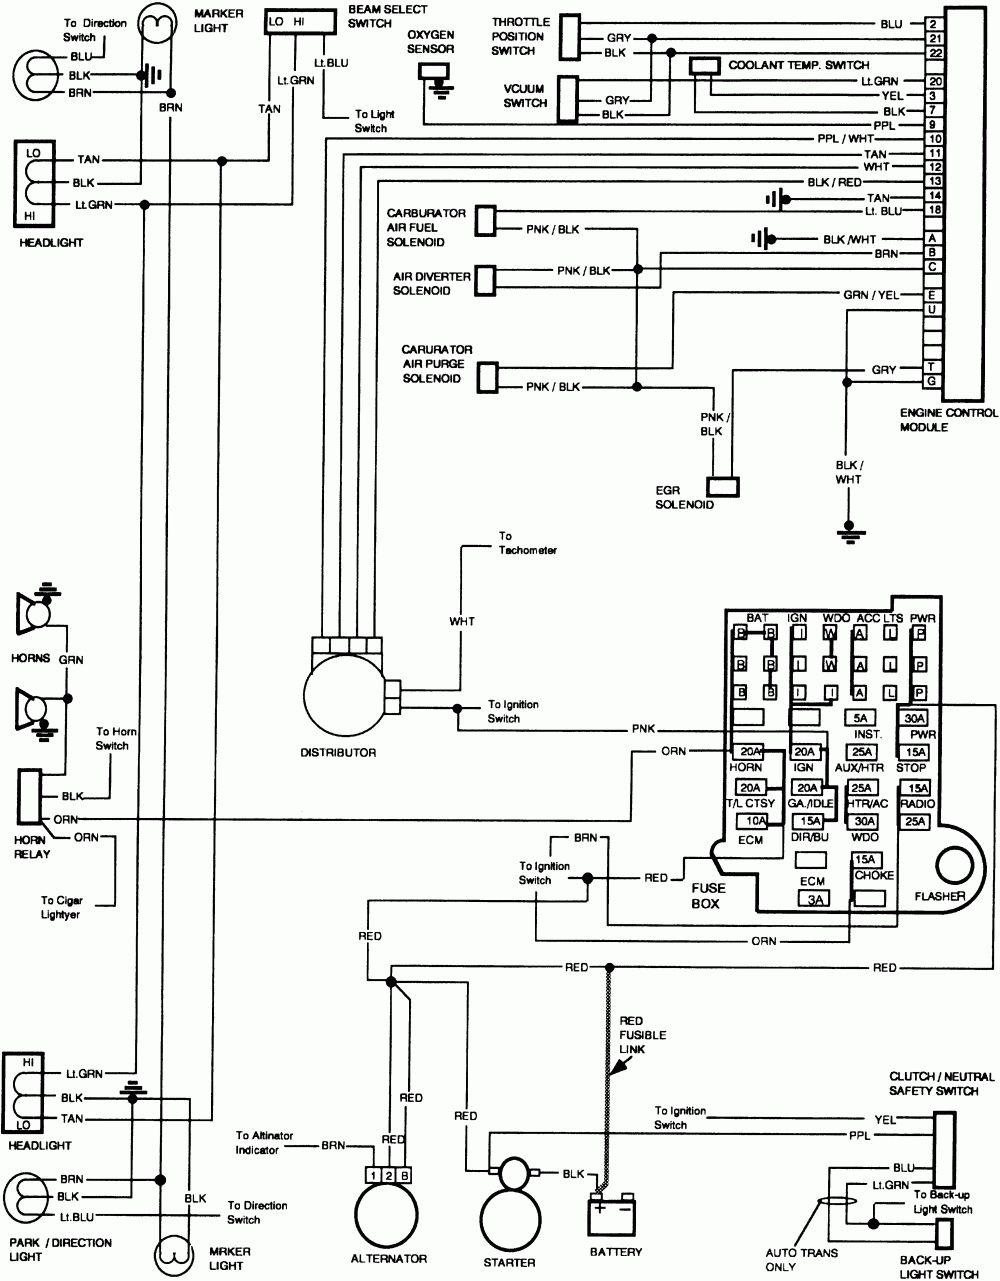 1985 Toyota Pickup Wiring Harness - Vw Polo Wiring Diagram 2008 -  dvi-d.tukune.jeanjaures37.fr | 1979 Toyota Pickup Wiring Harness |  | Wiring Diagram Resource